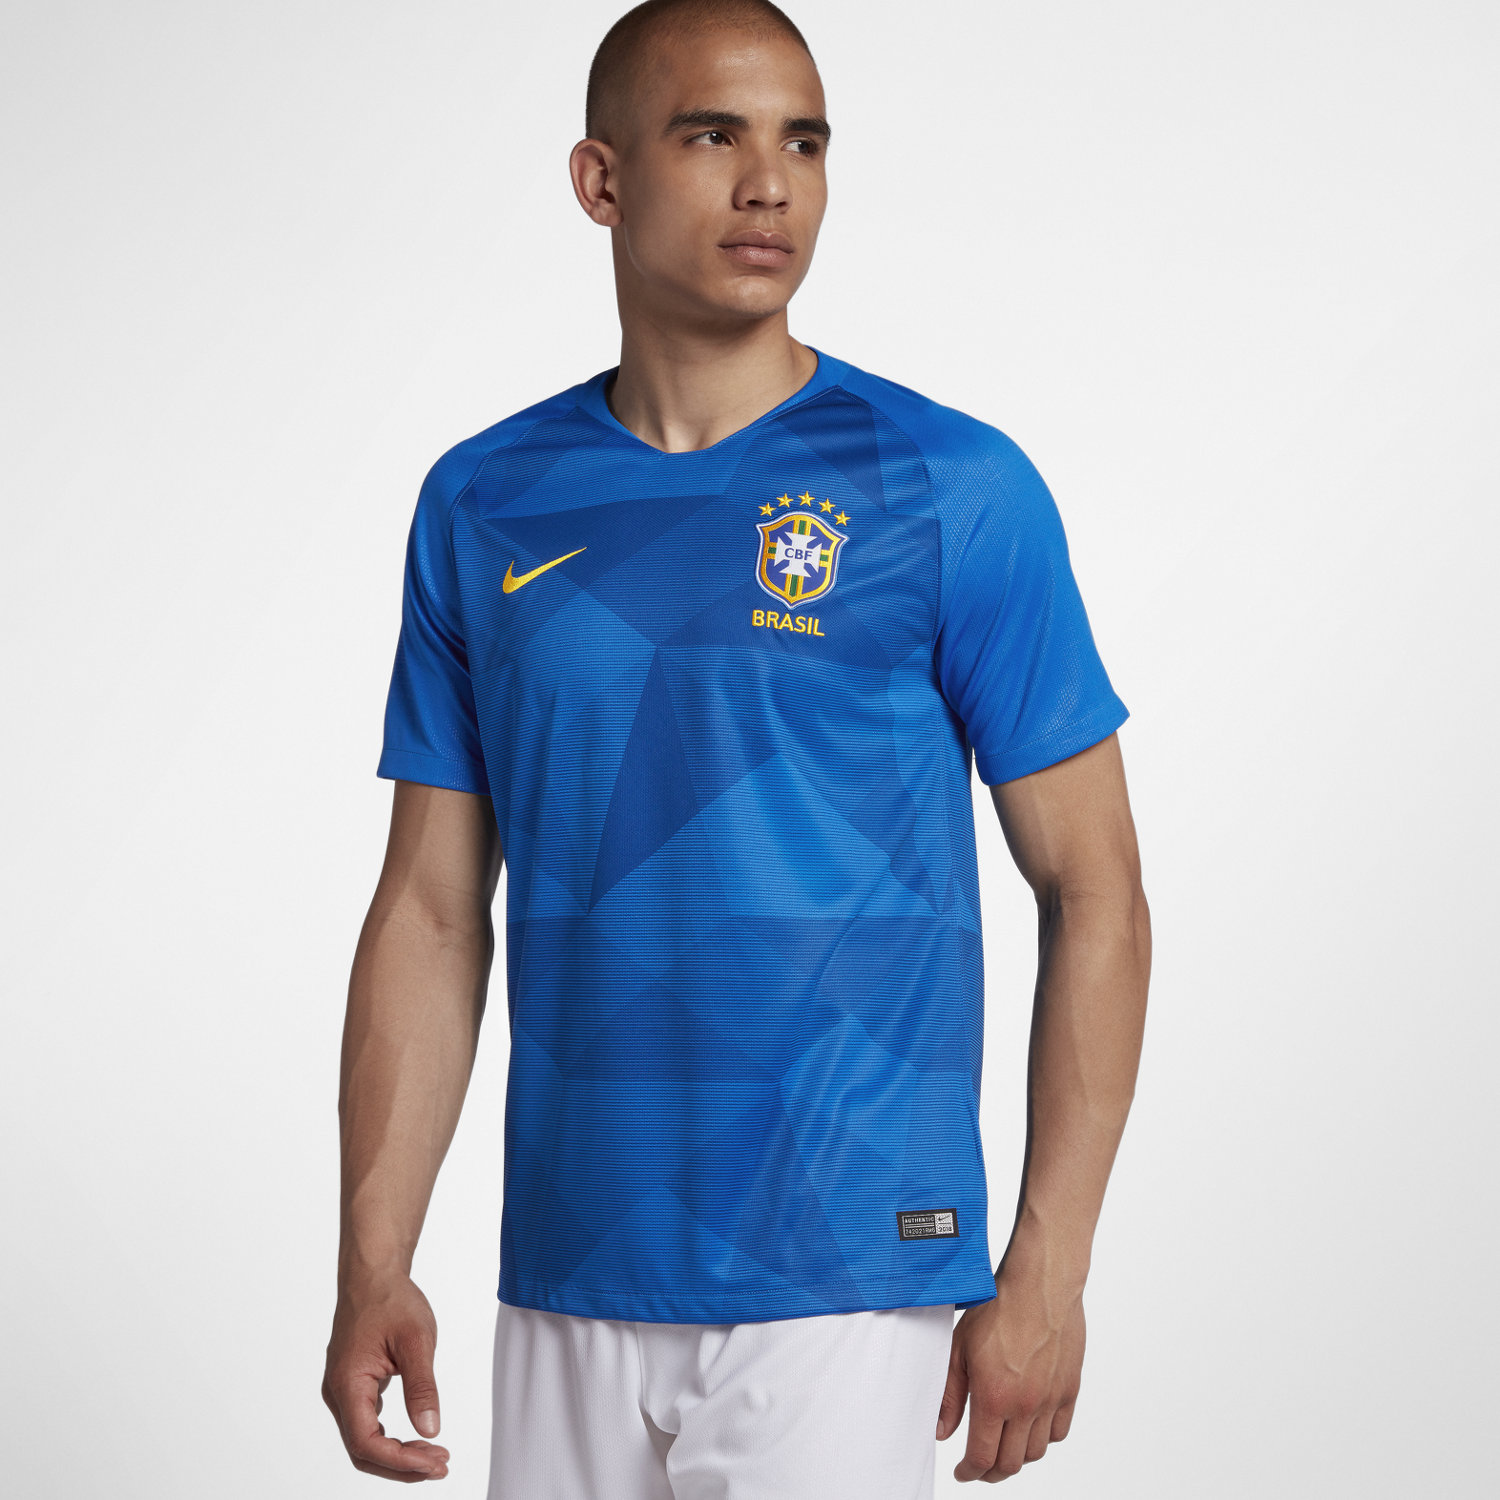 85a32bb878 2018 Brazil CBF Stadium Away Men s Football Shirt. Nike.com UK